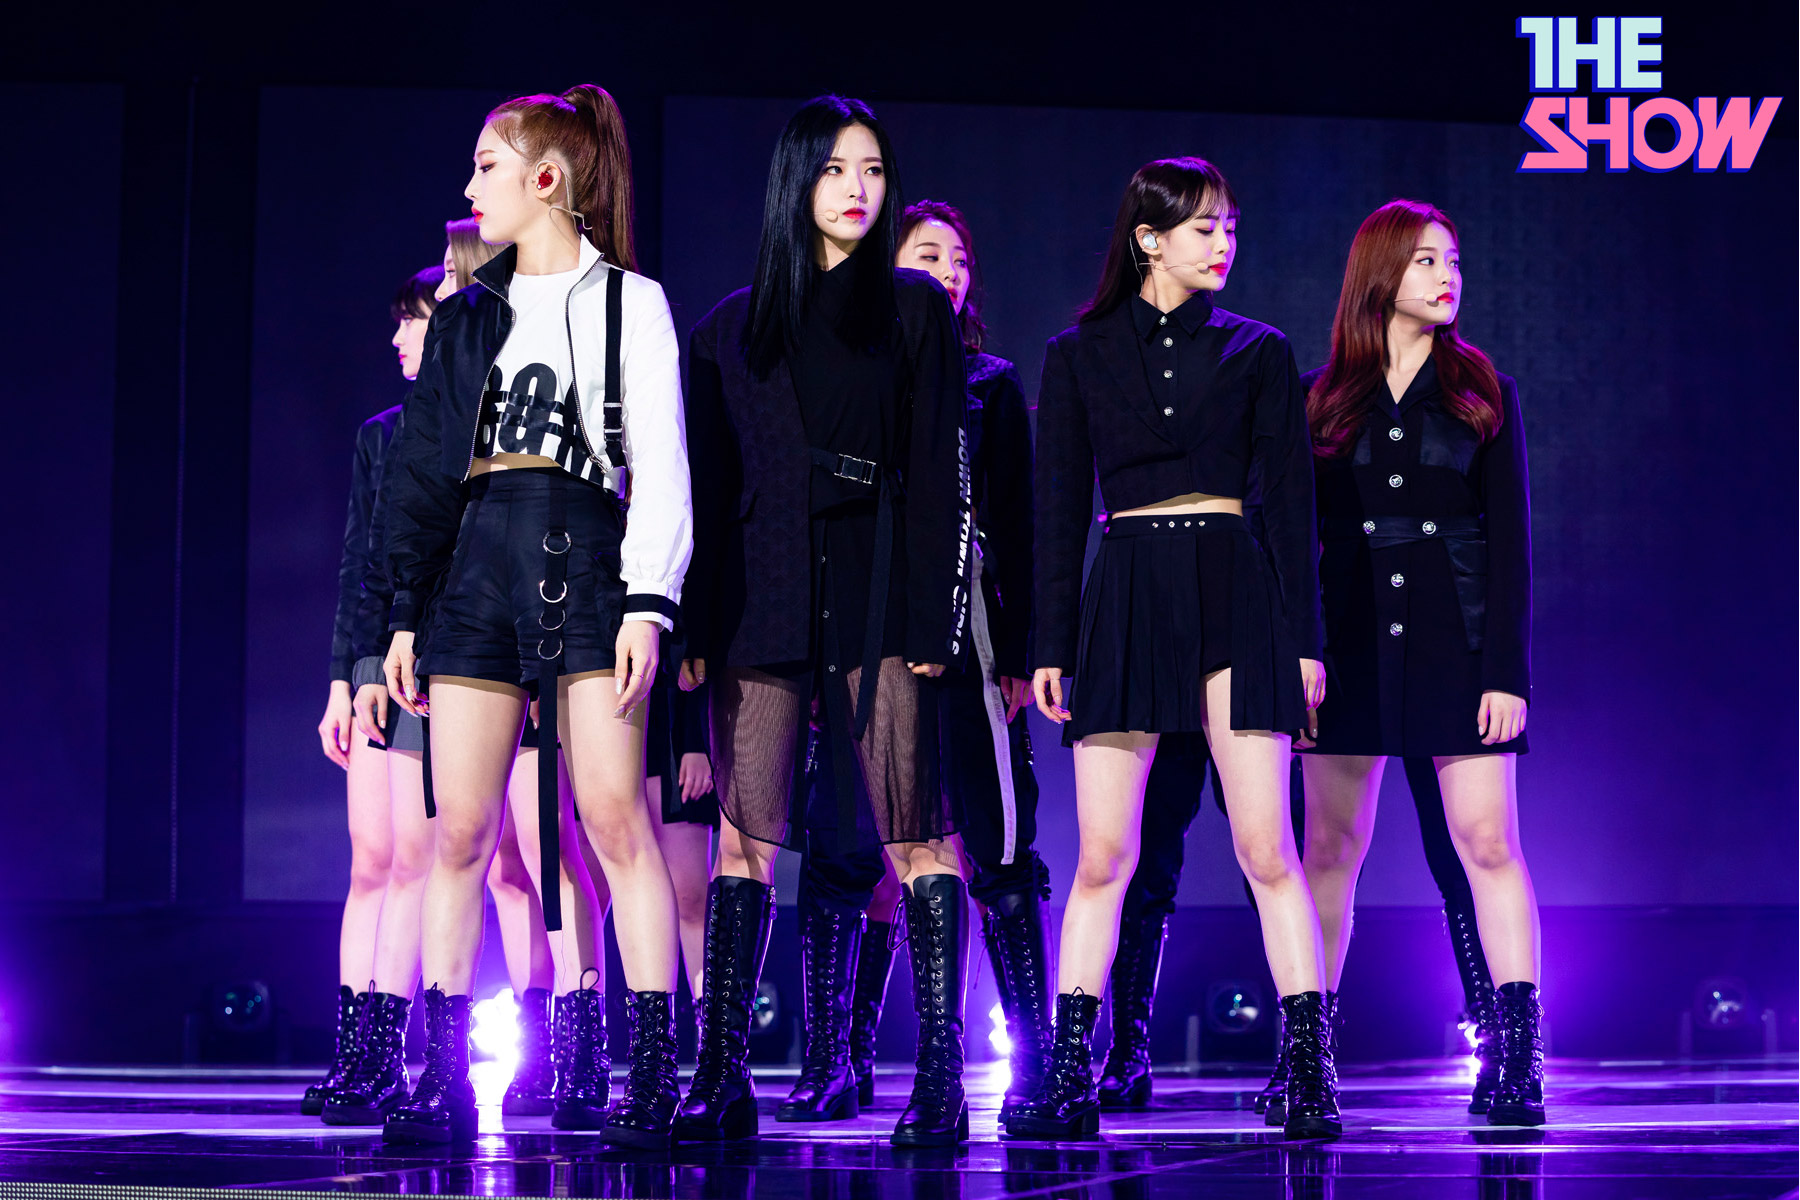 200212 THE SHOW Stage So What LOONA 5.jpg